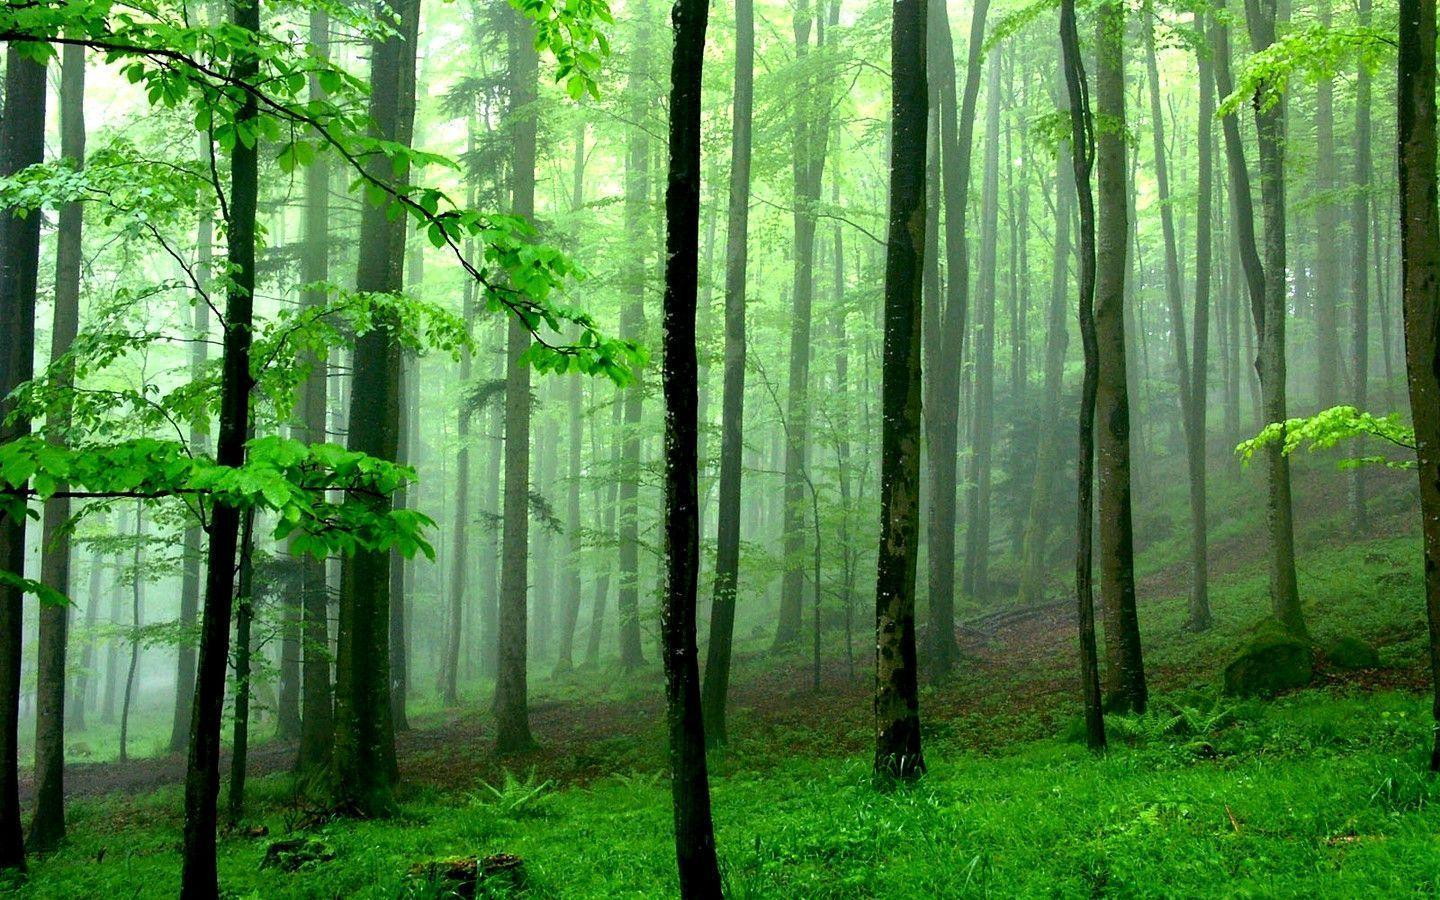 Green Forest Wallpapers Hd Image 3 HD Wallpapers